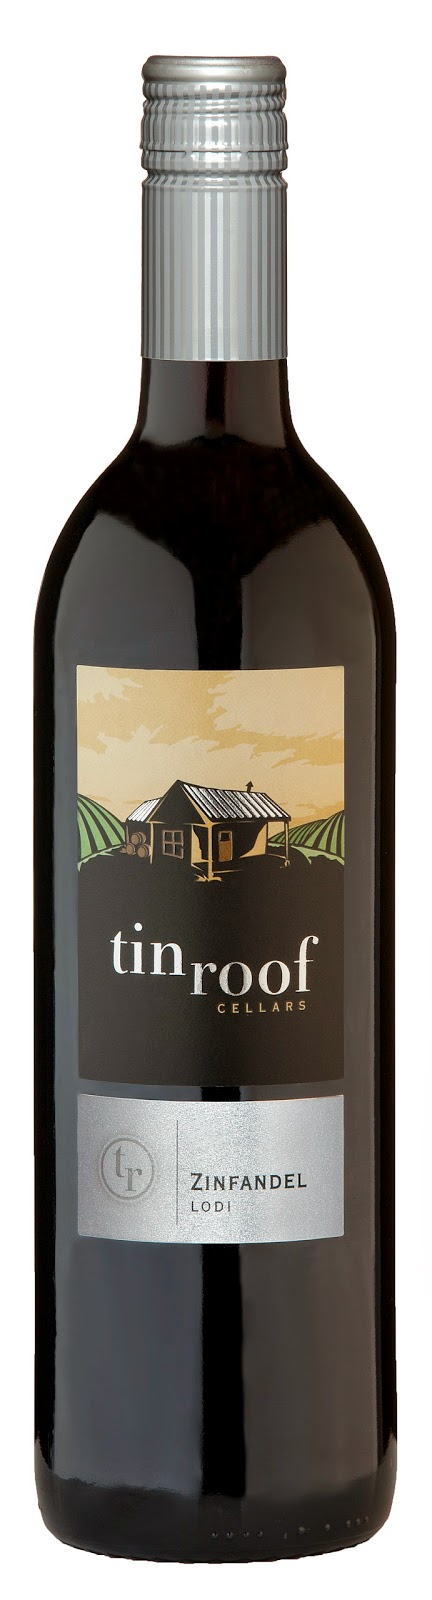 bottle of Tin Roof Cellars Zinfandel, 2011